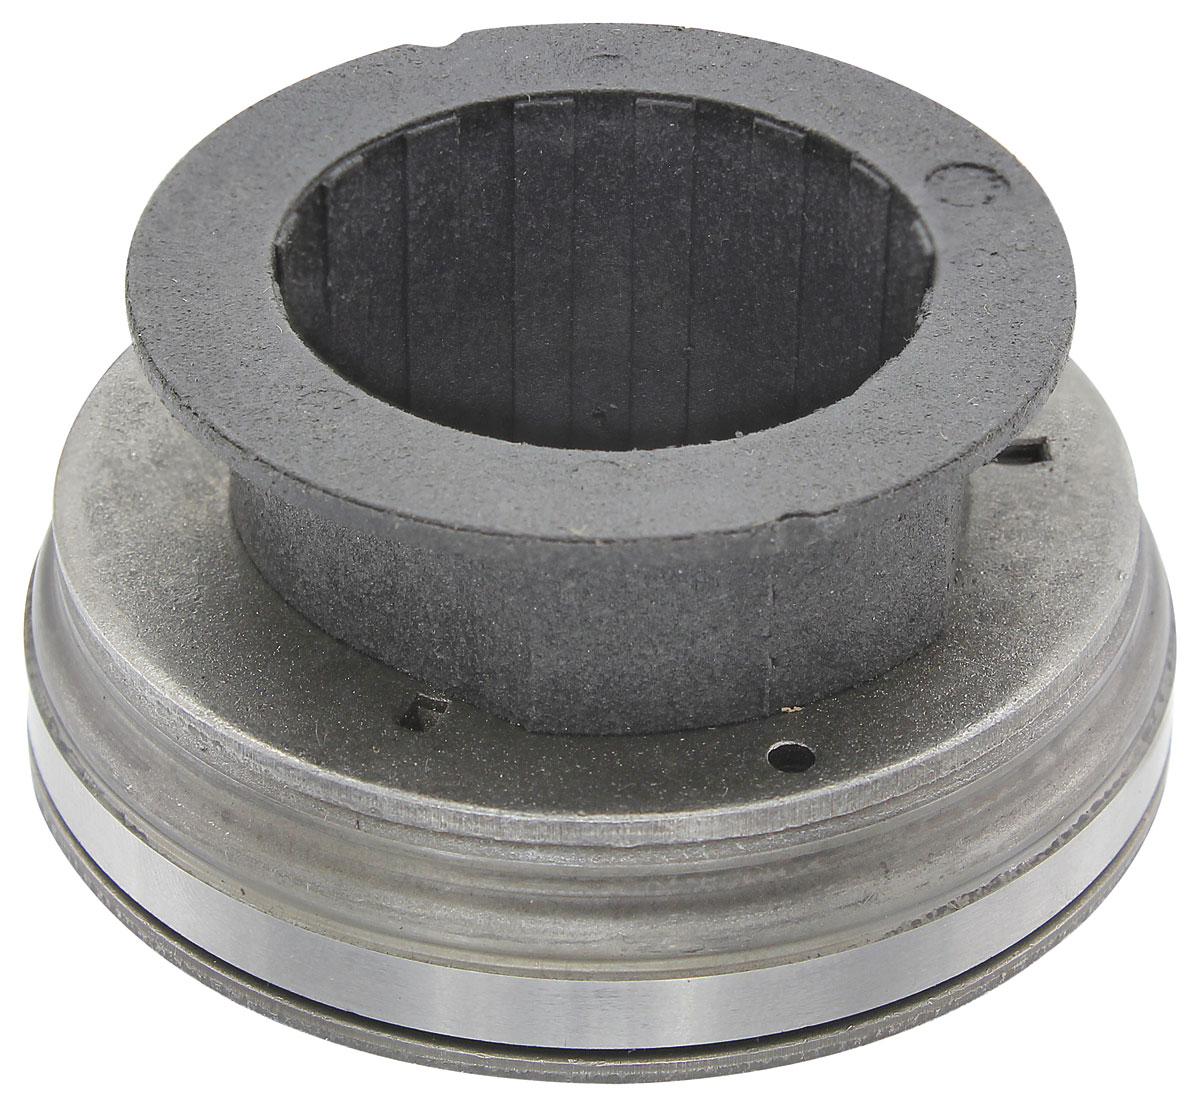 Bearing, Clutch Throwout, 1984-88 Monte Carlo/El Camino, 4-Speed